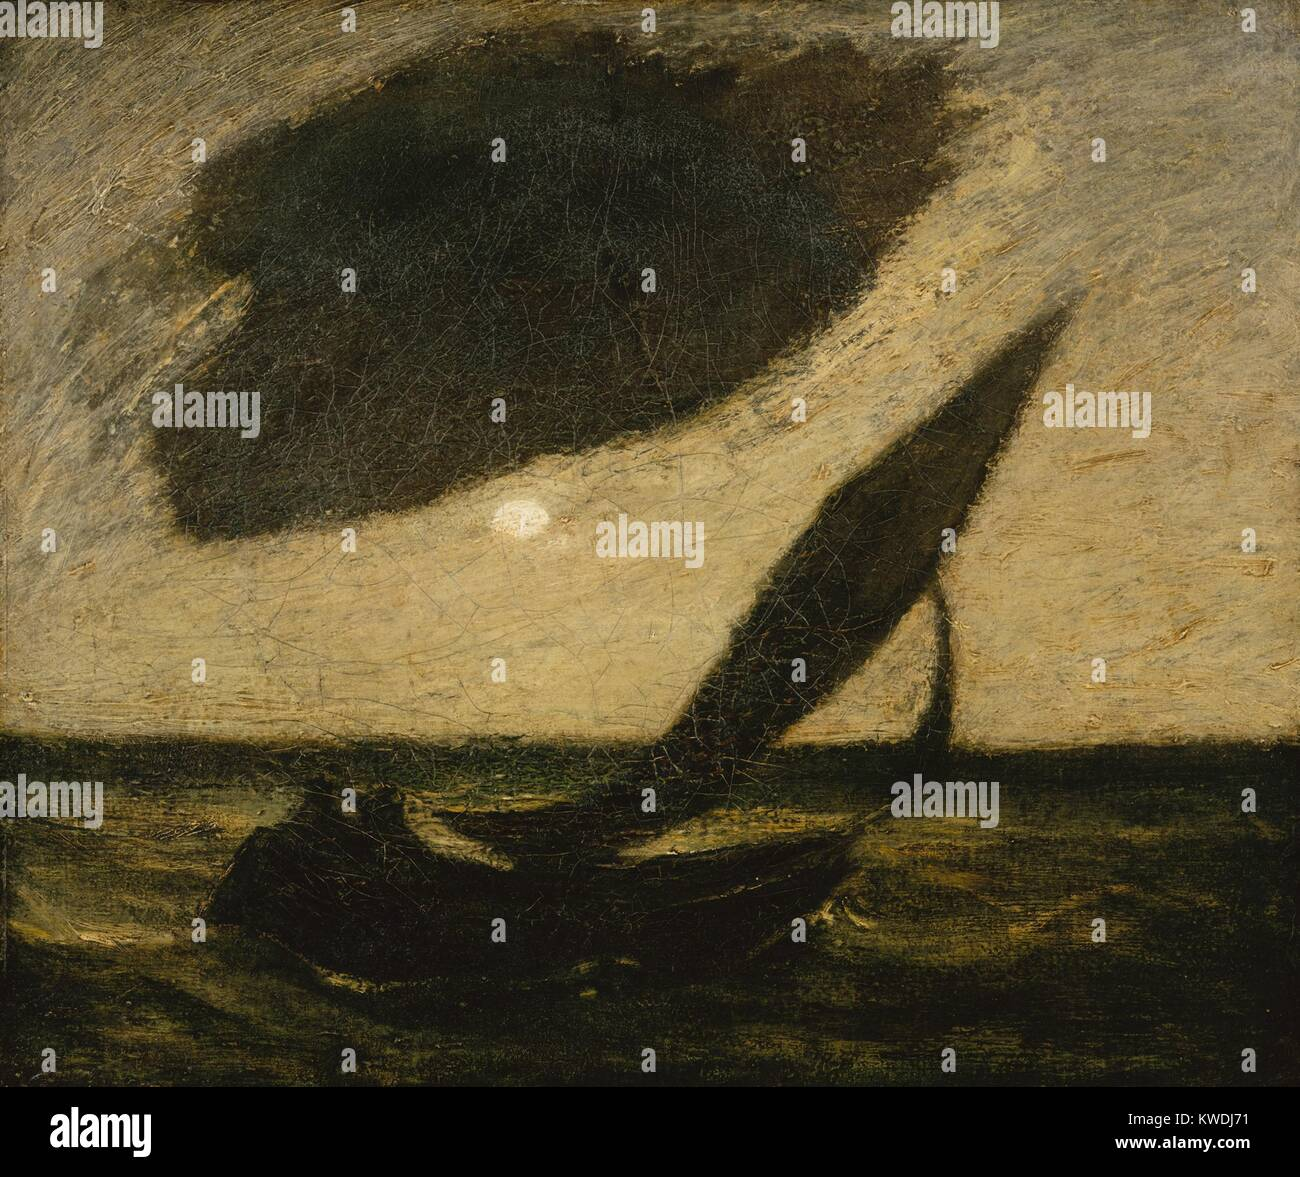 UNDER A CLOUD, by Albert Pinkham Ryder, 1900, American painting, oil on canvas. This evocative nocturnal seascape - Stock Image